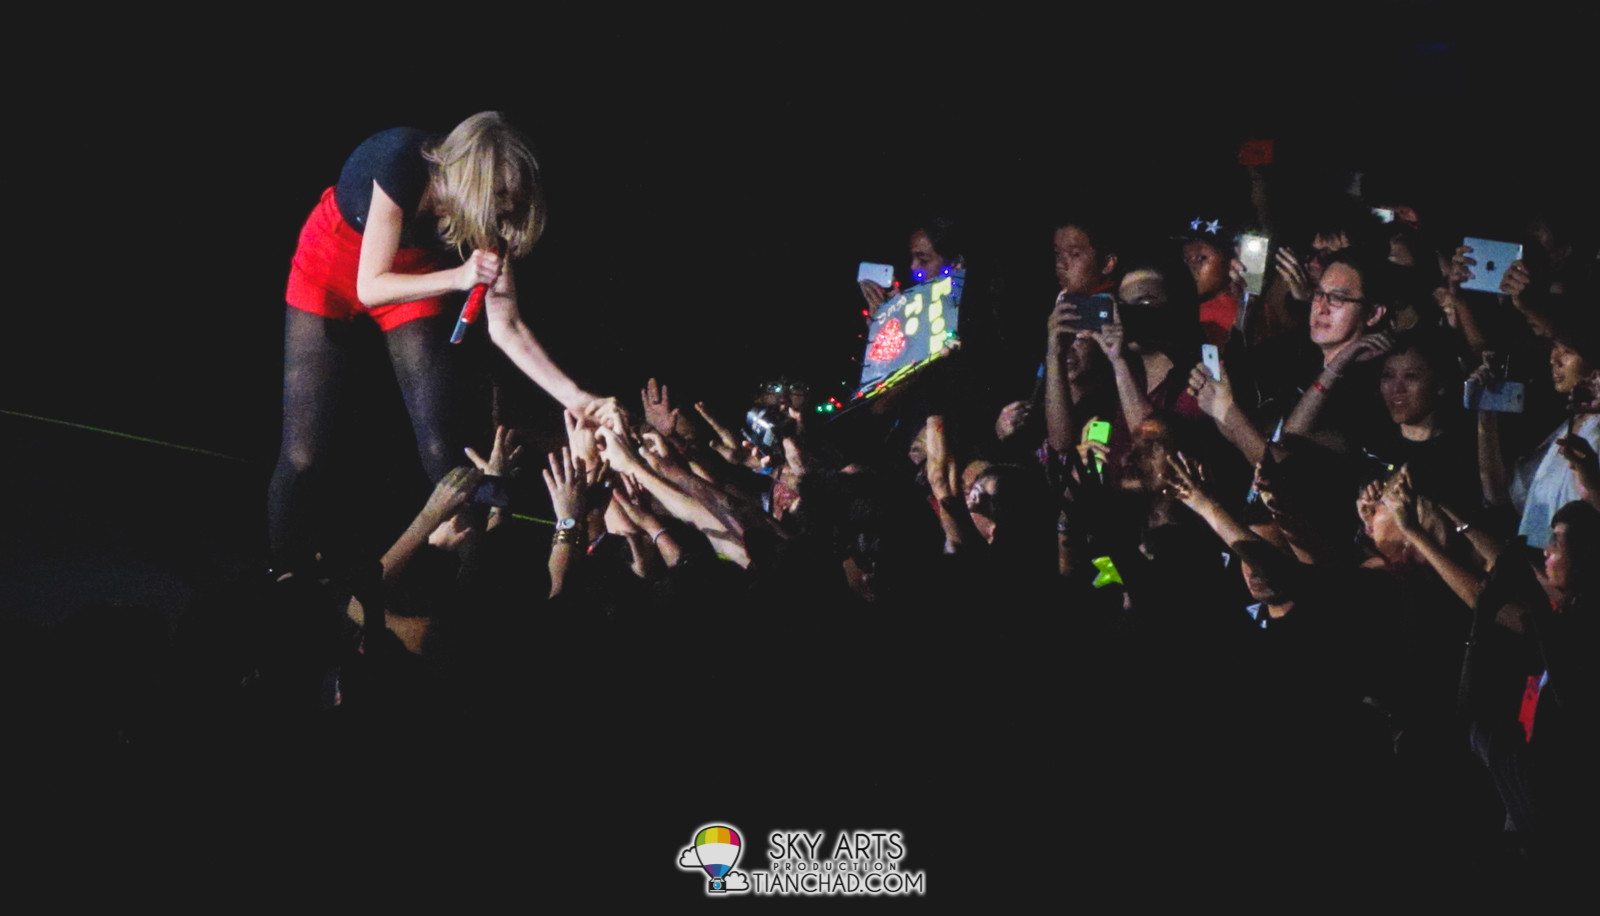 Taylor Swift has been very kind to interact with Malaysia fans frequently!!